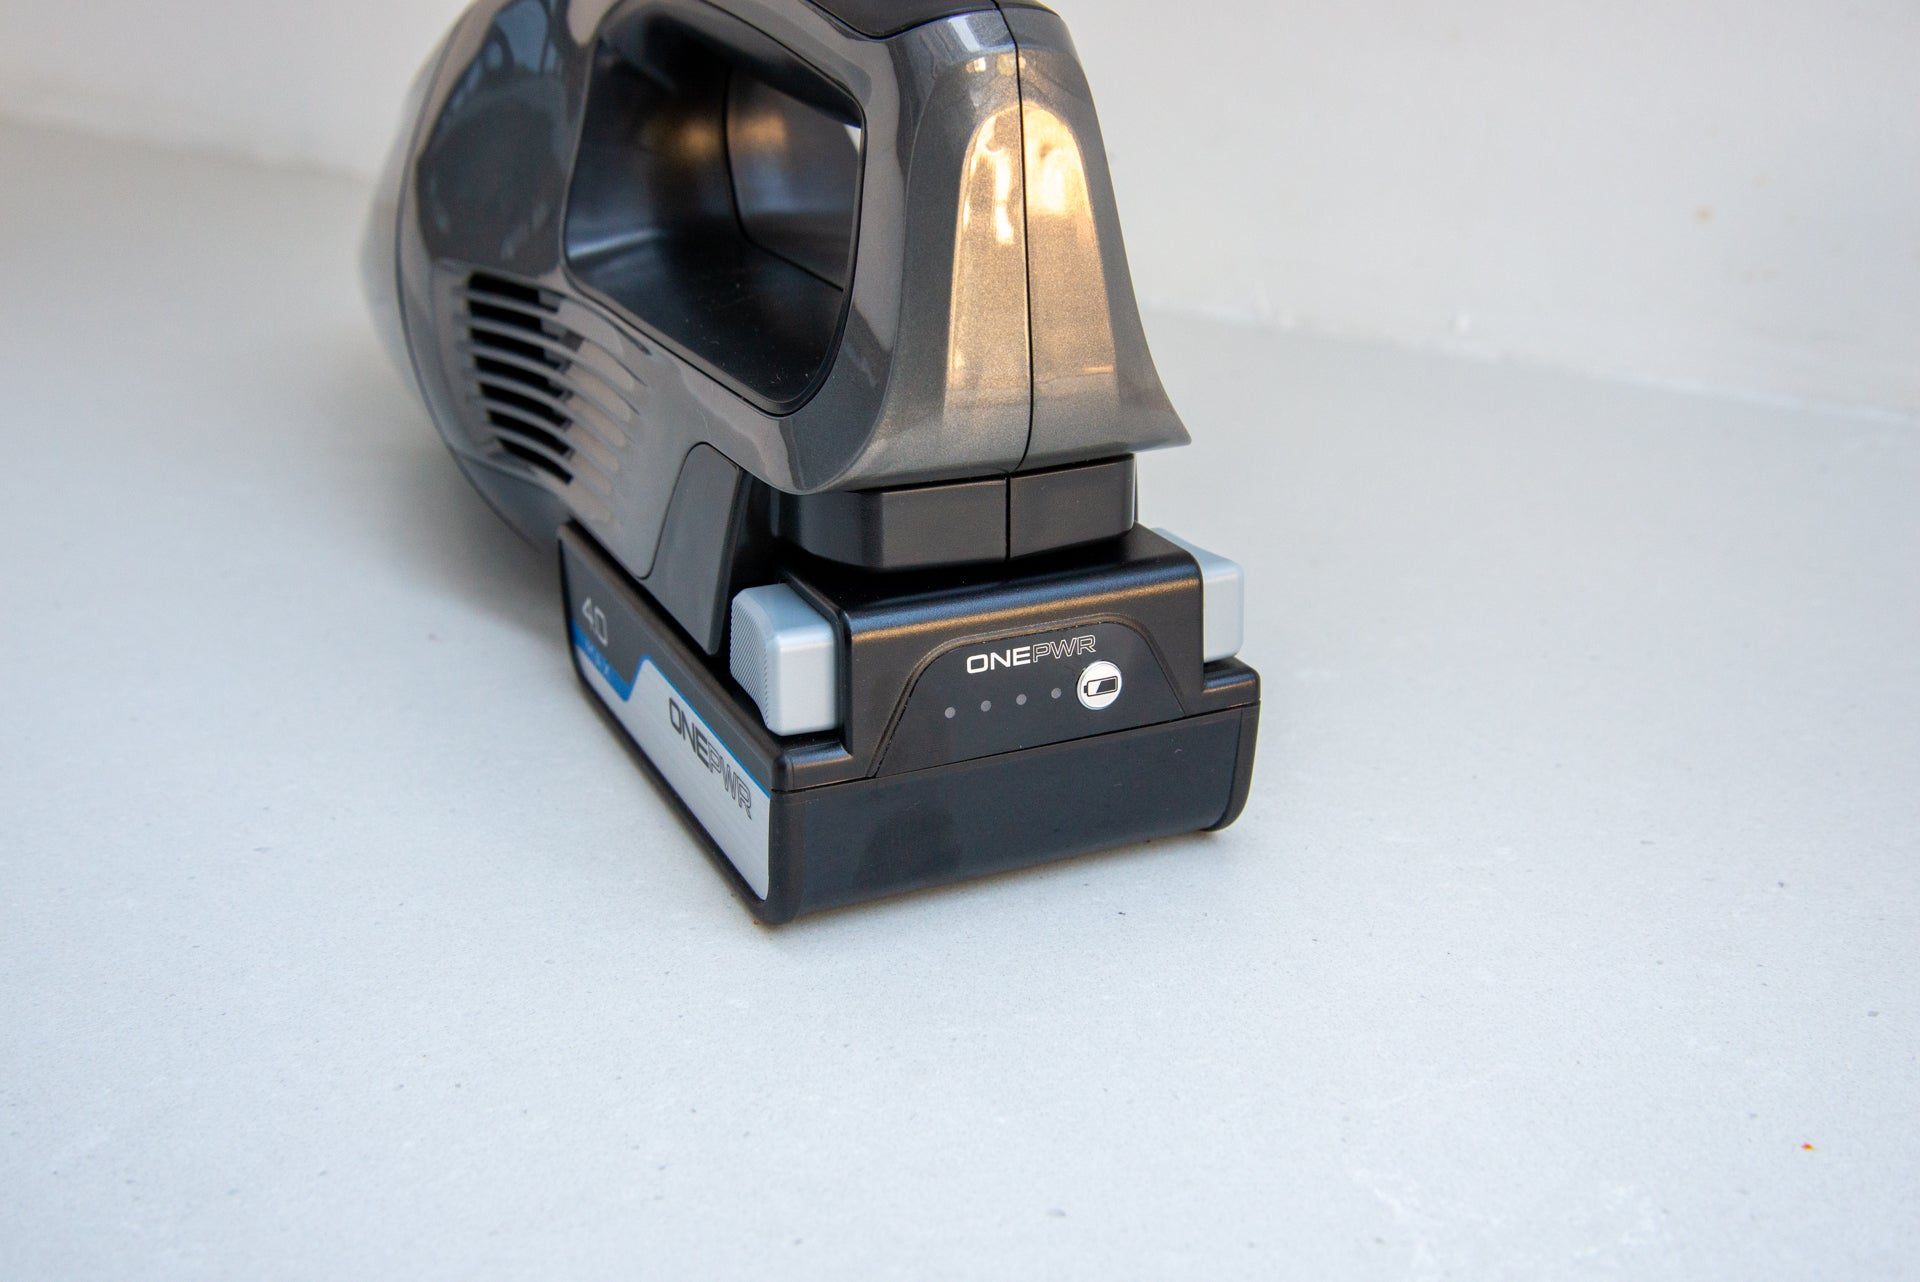 Vax ONEPWR Cordless Hand Vac battery pack